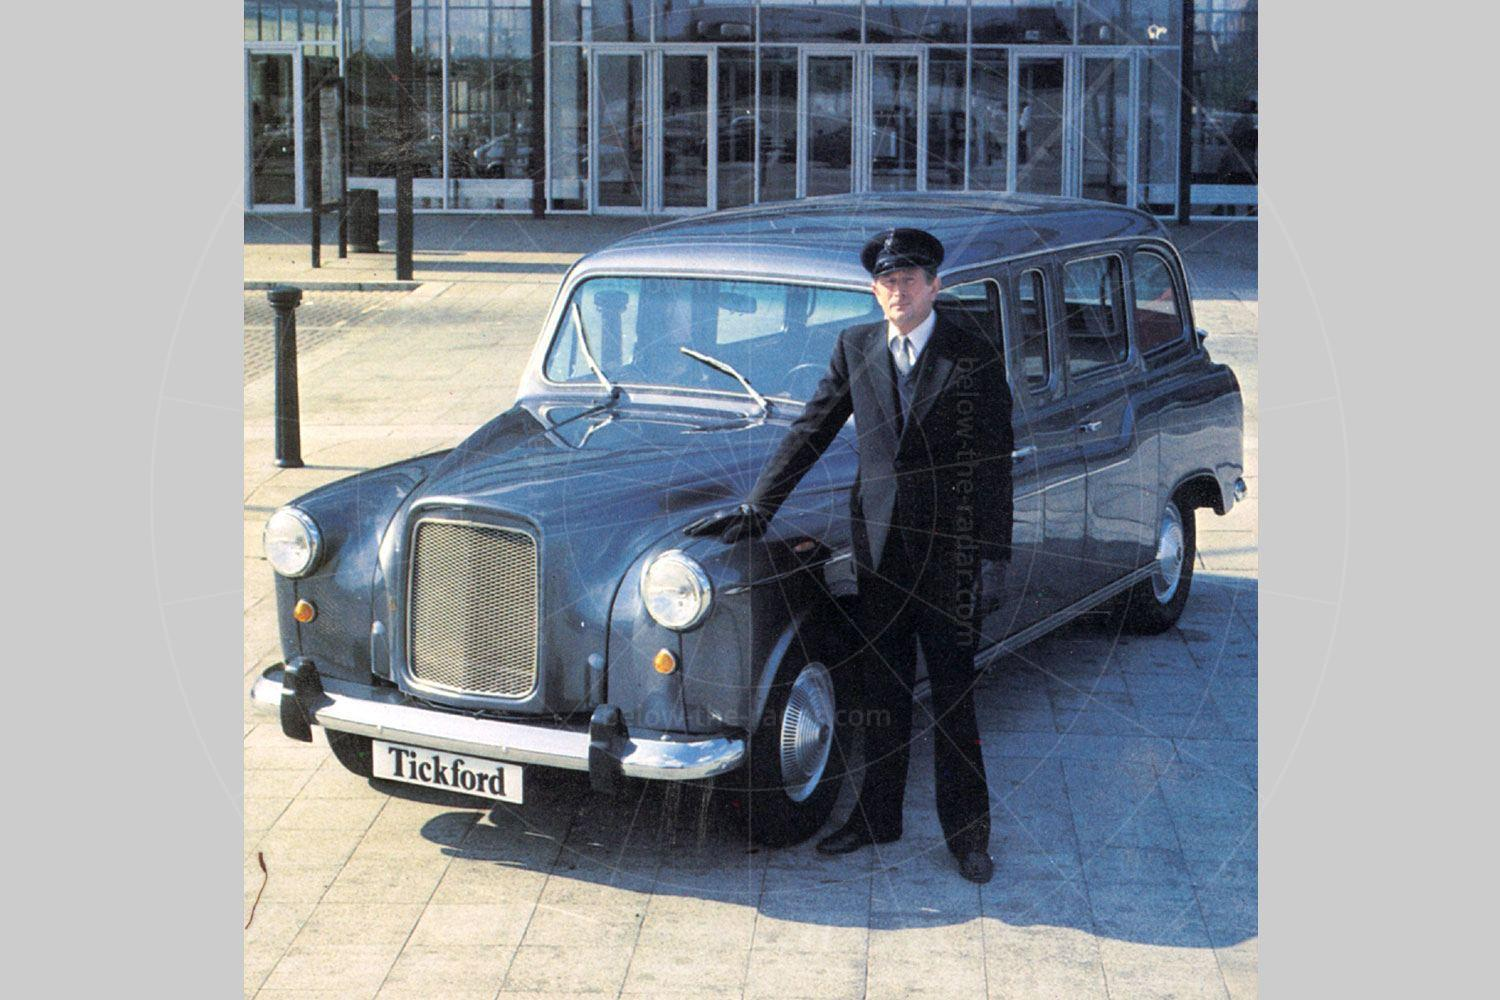 The Tickford Taxi